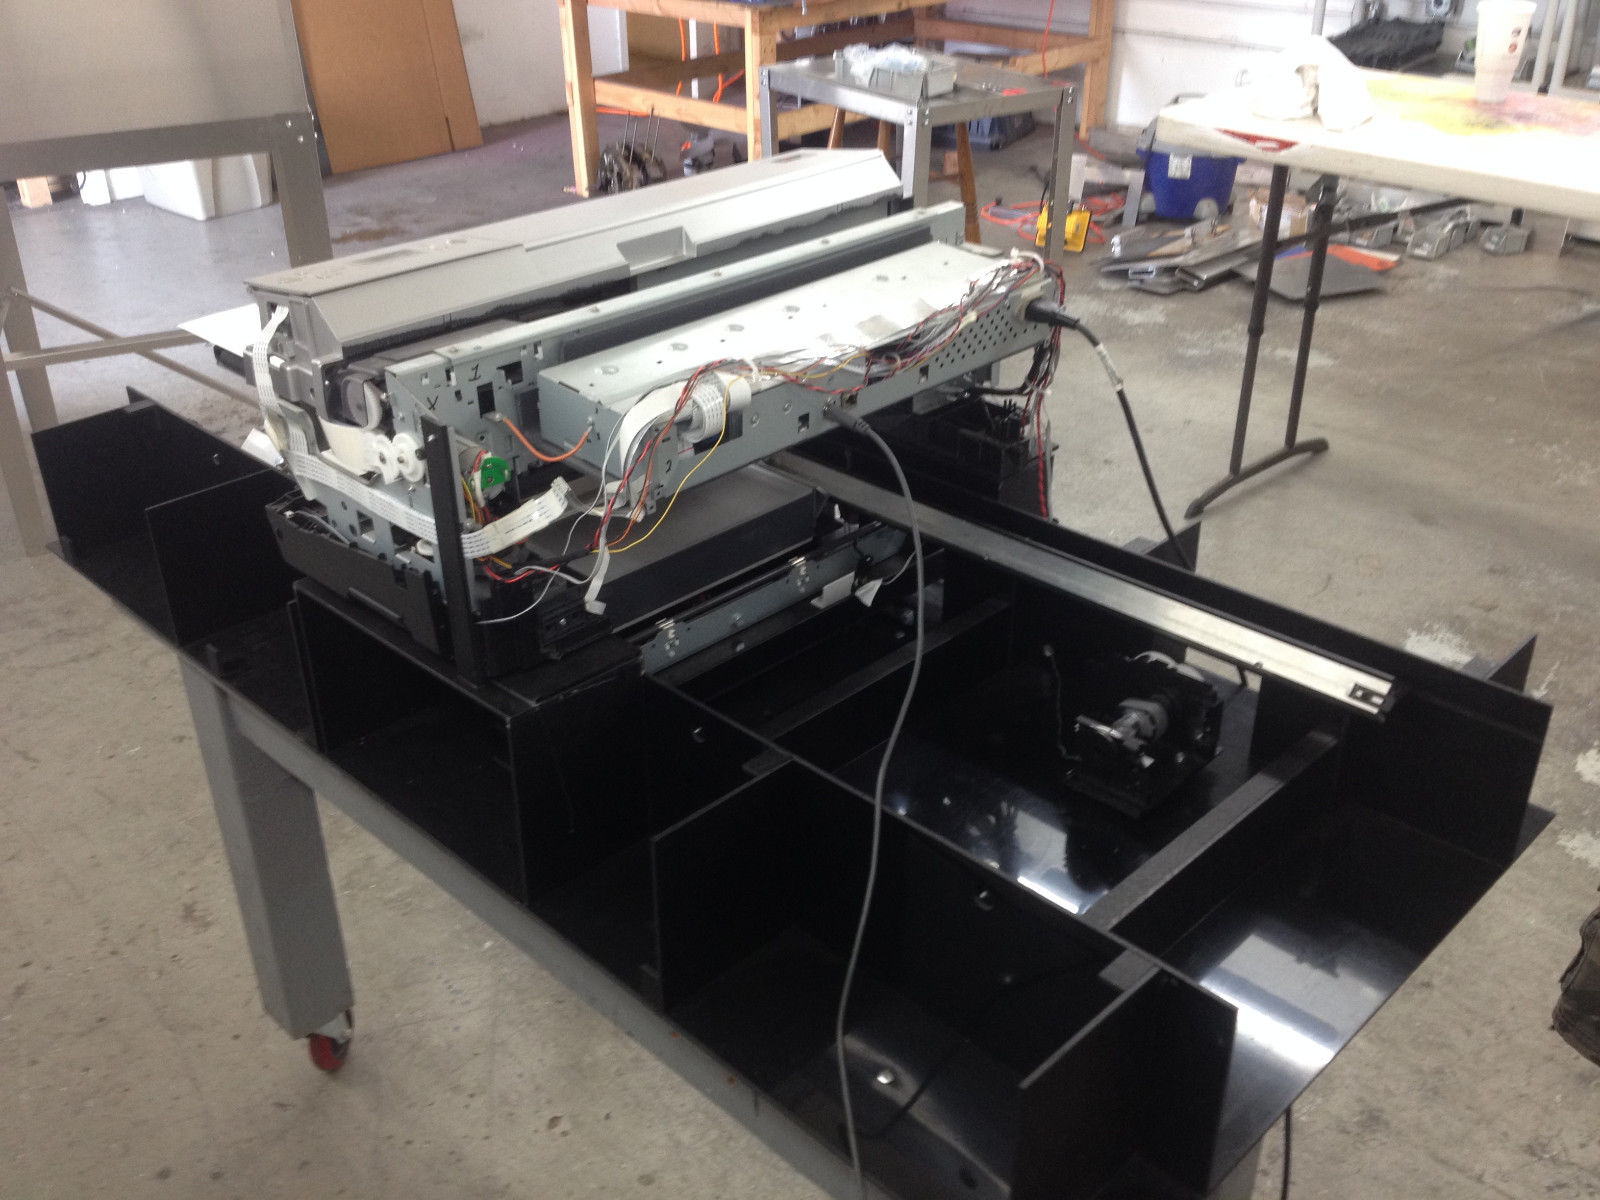 DIY Flatbed DTG Printer r3880 - $1,200